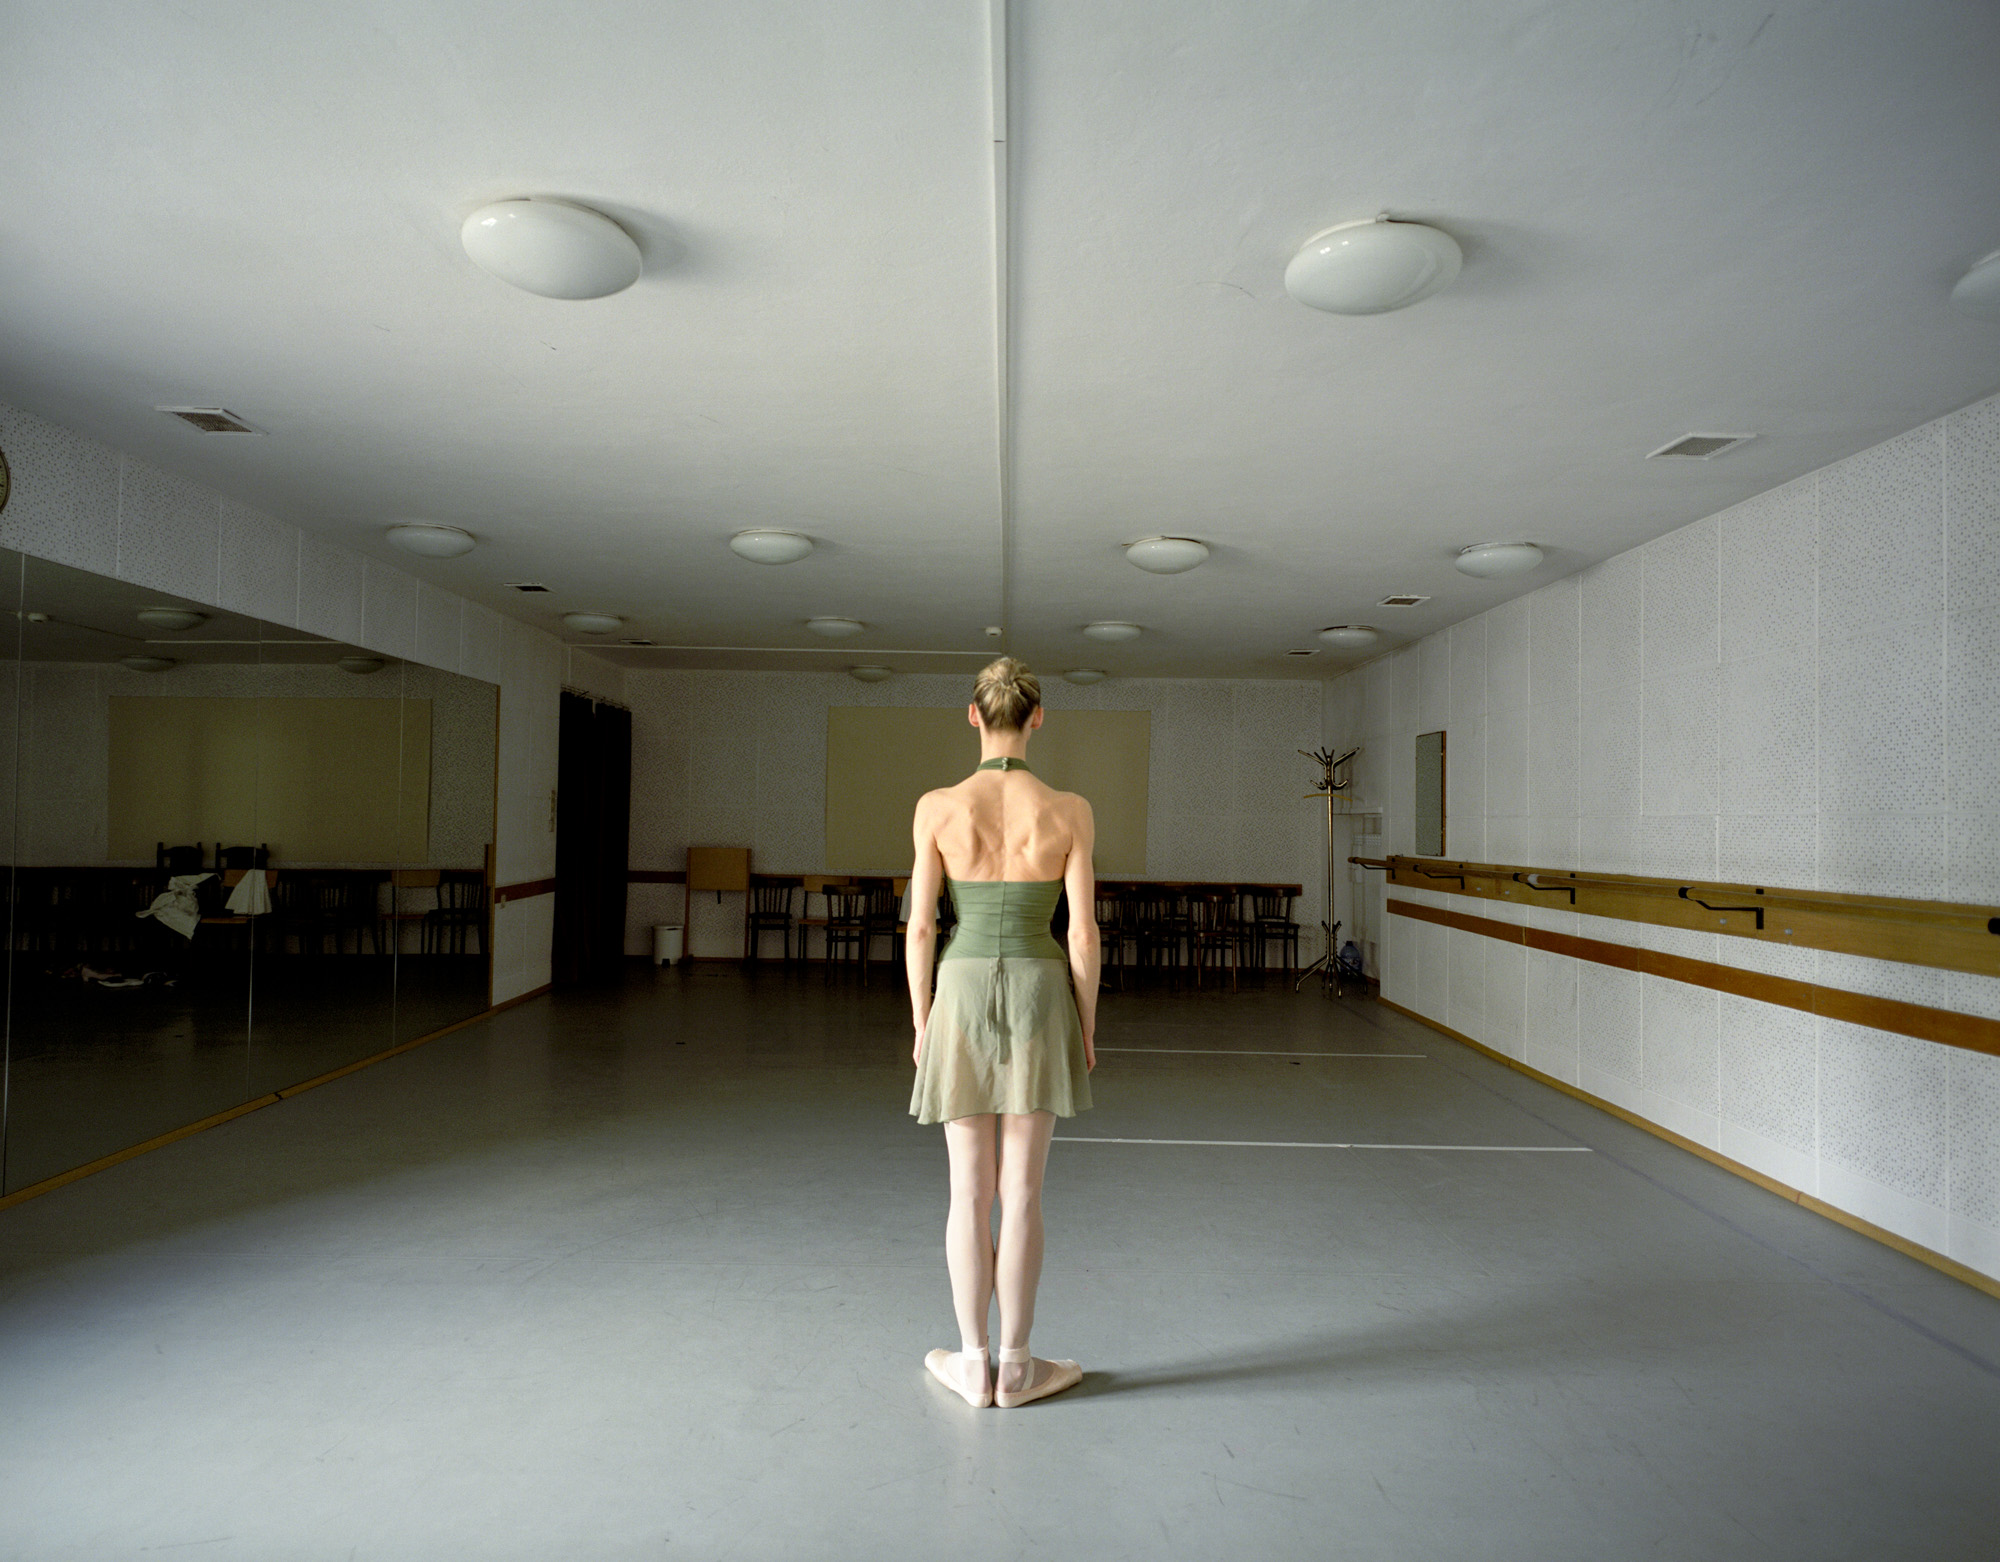 Malgorzata Aftowicz, a Coryphee at the Polish National Ballet, in one of the smaller practise rooms in the Grand Theatre.